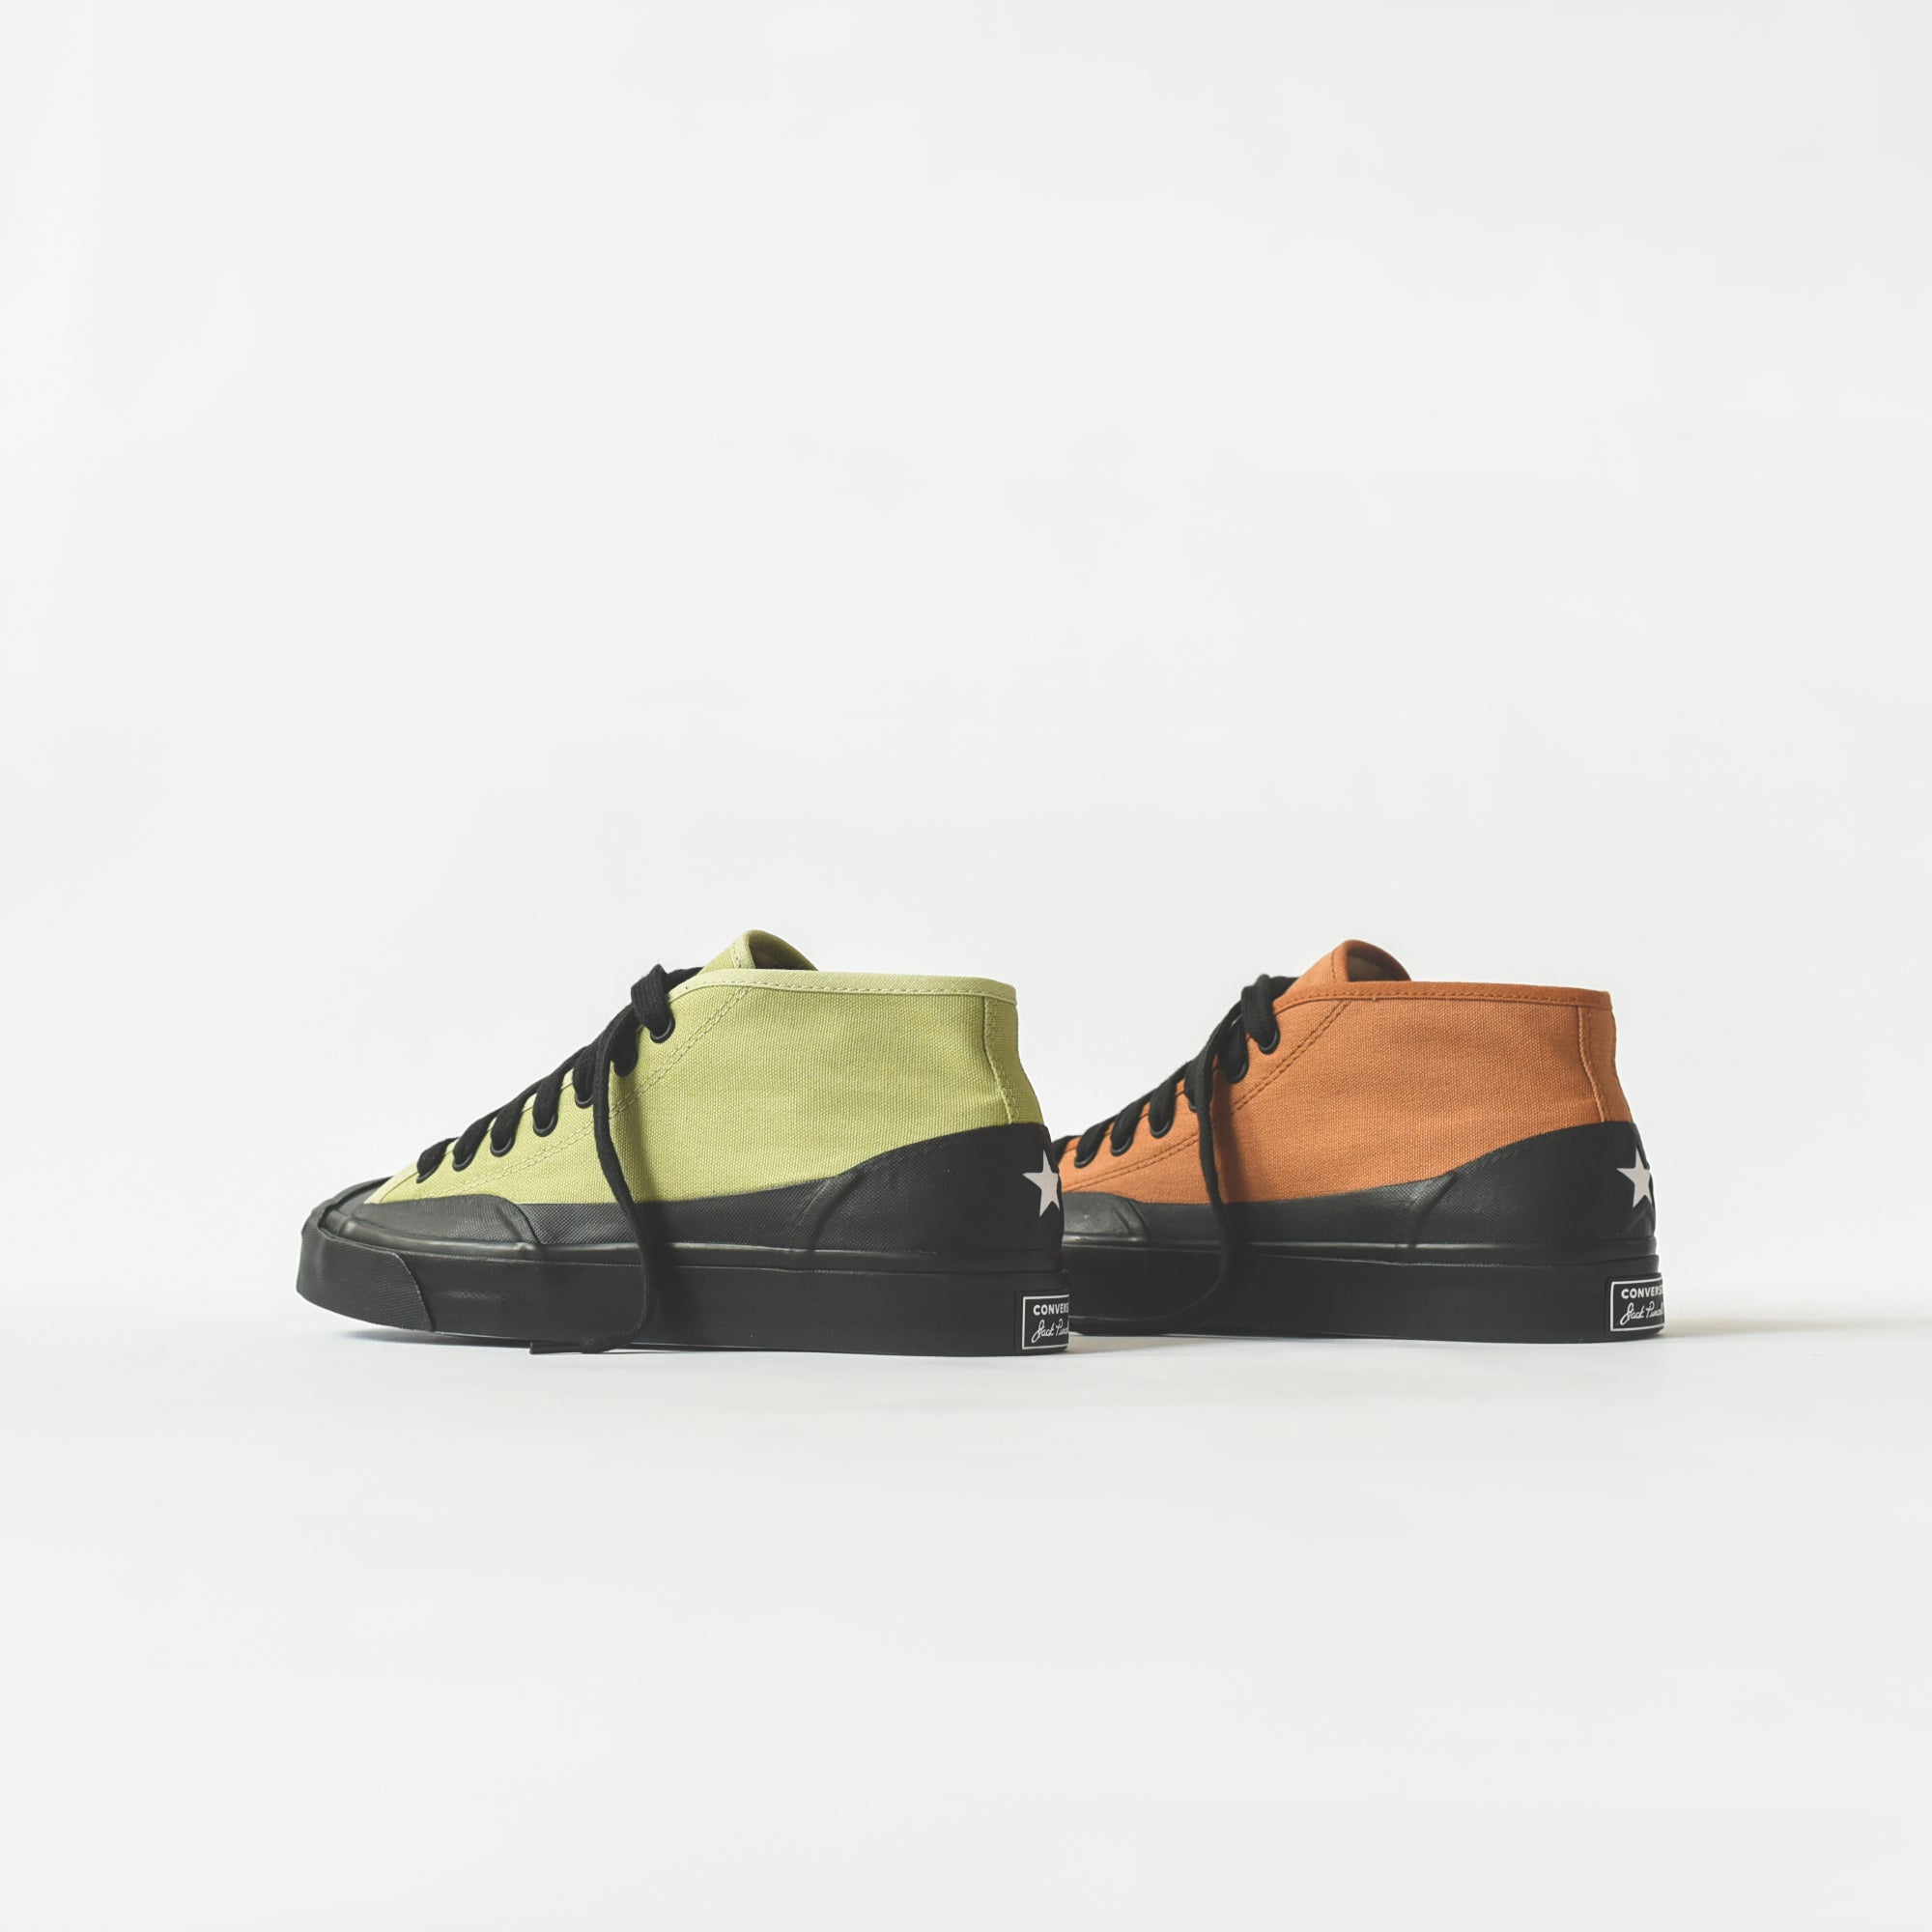 04497449f11ce Converse x A AP Nast Jack Purcell Chukka Mid Pack – Kith